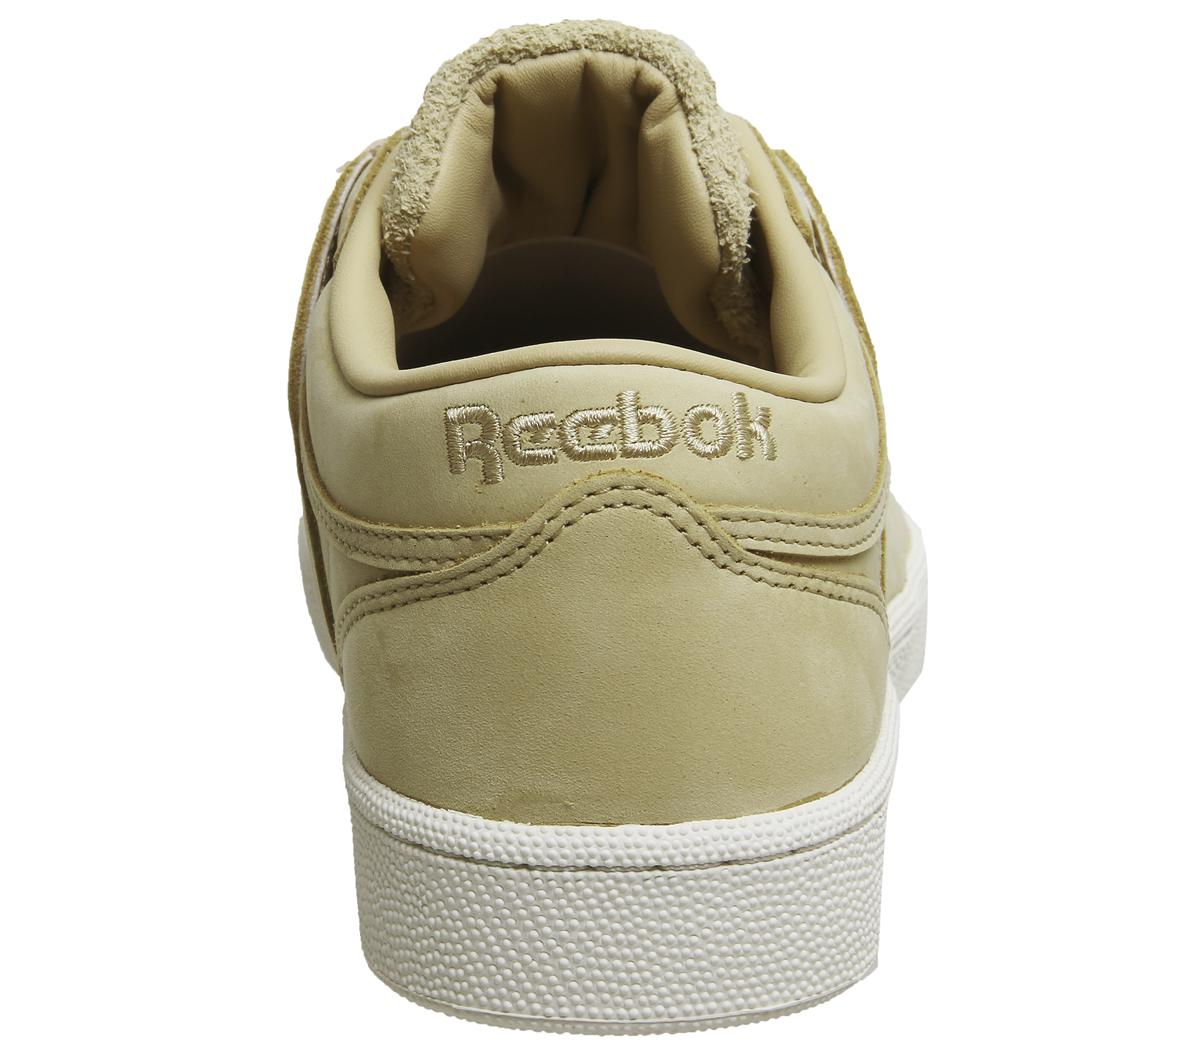 Reebok Rubber Club Workout Trainers in Beige Chalk (Natural) for Men